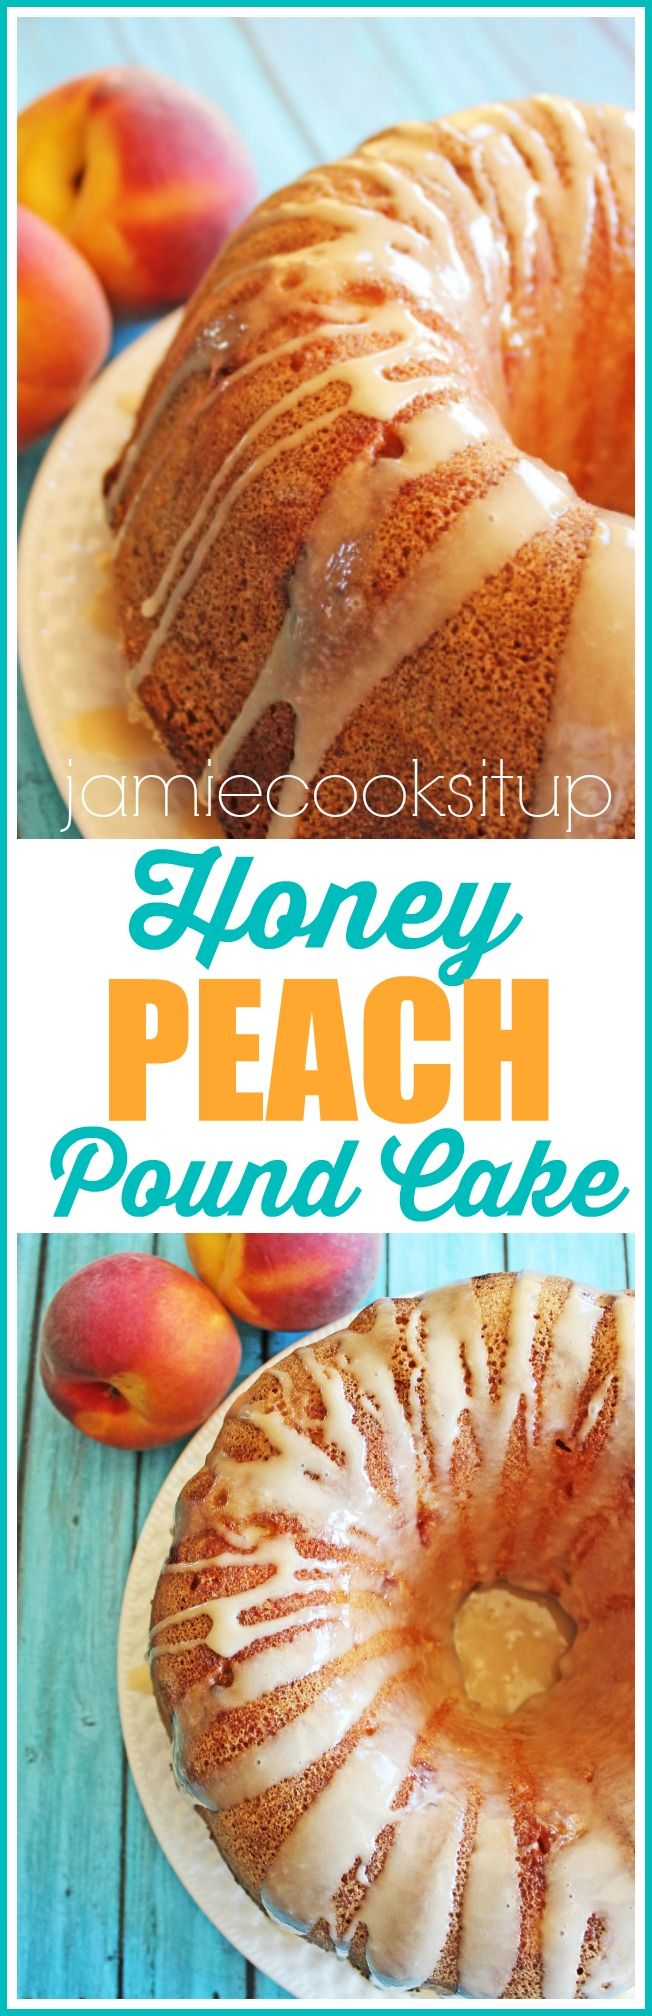 Honey Peach Pound Cake at Jamie Cooks It Up! A rich, buttery cake is studded with peaches and drizzled in a honey glaze.